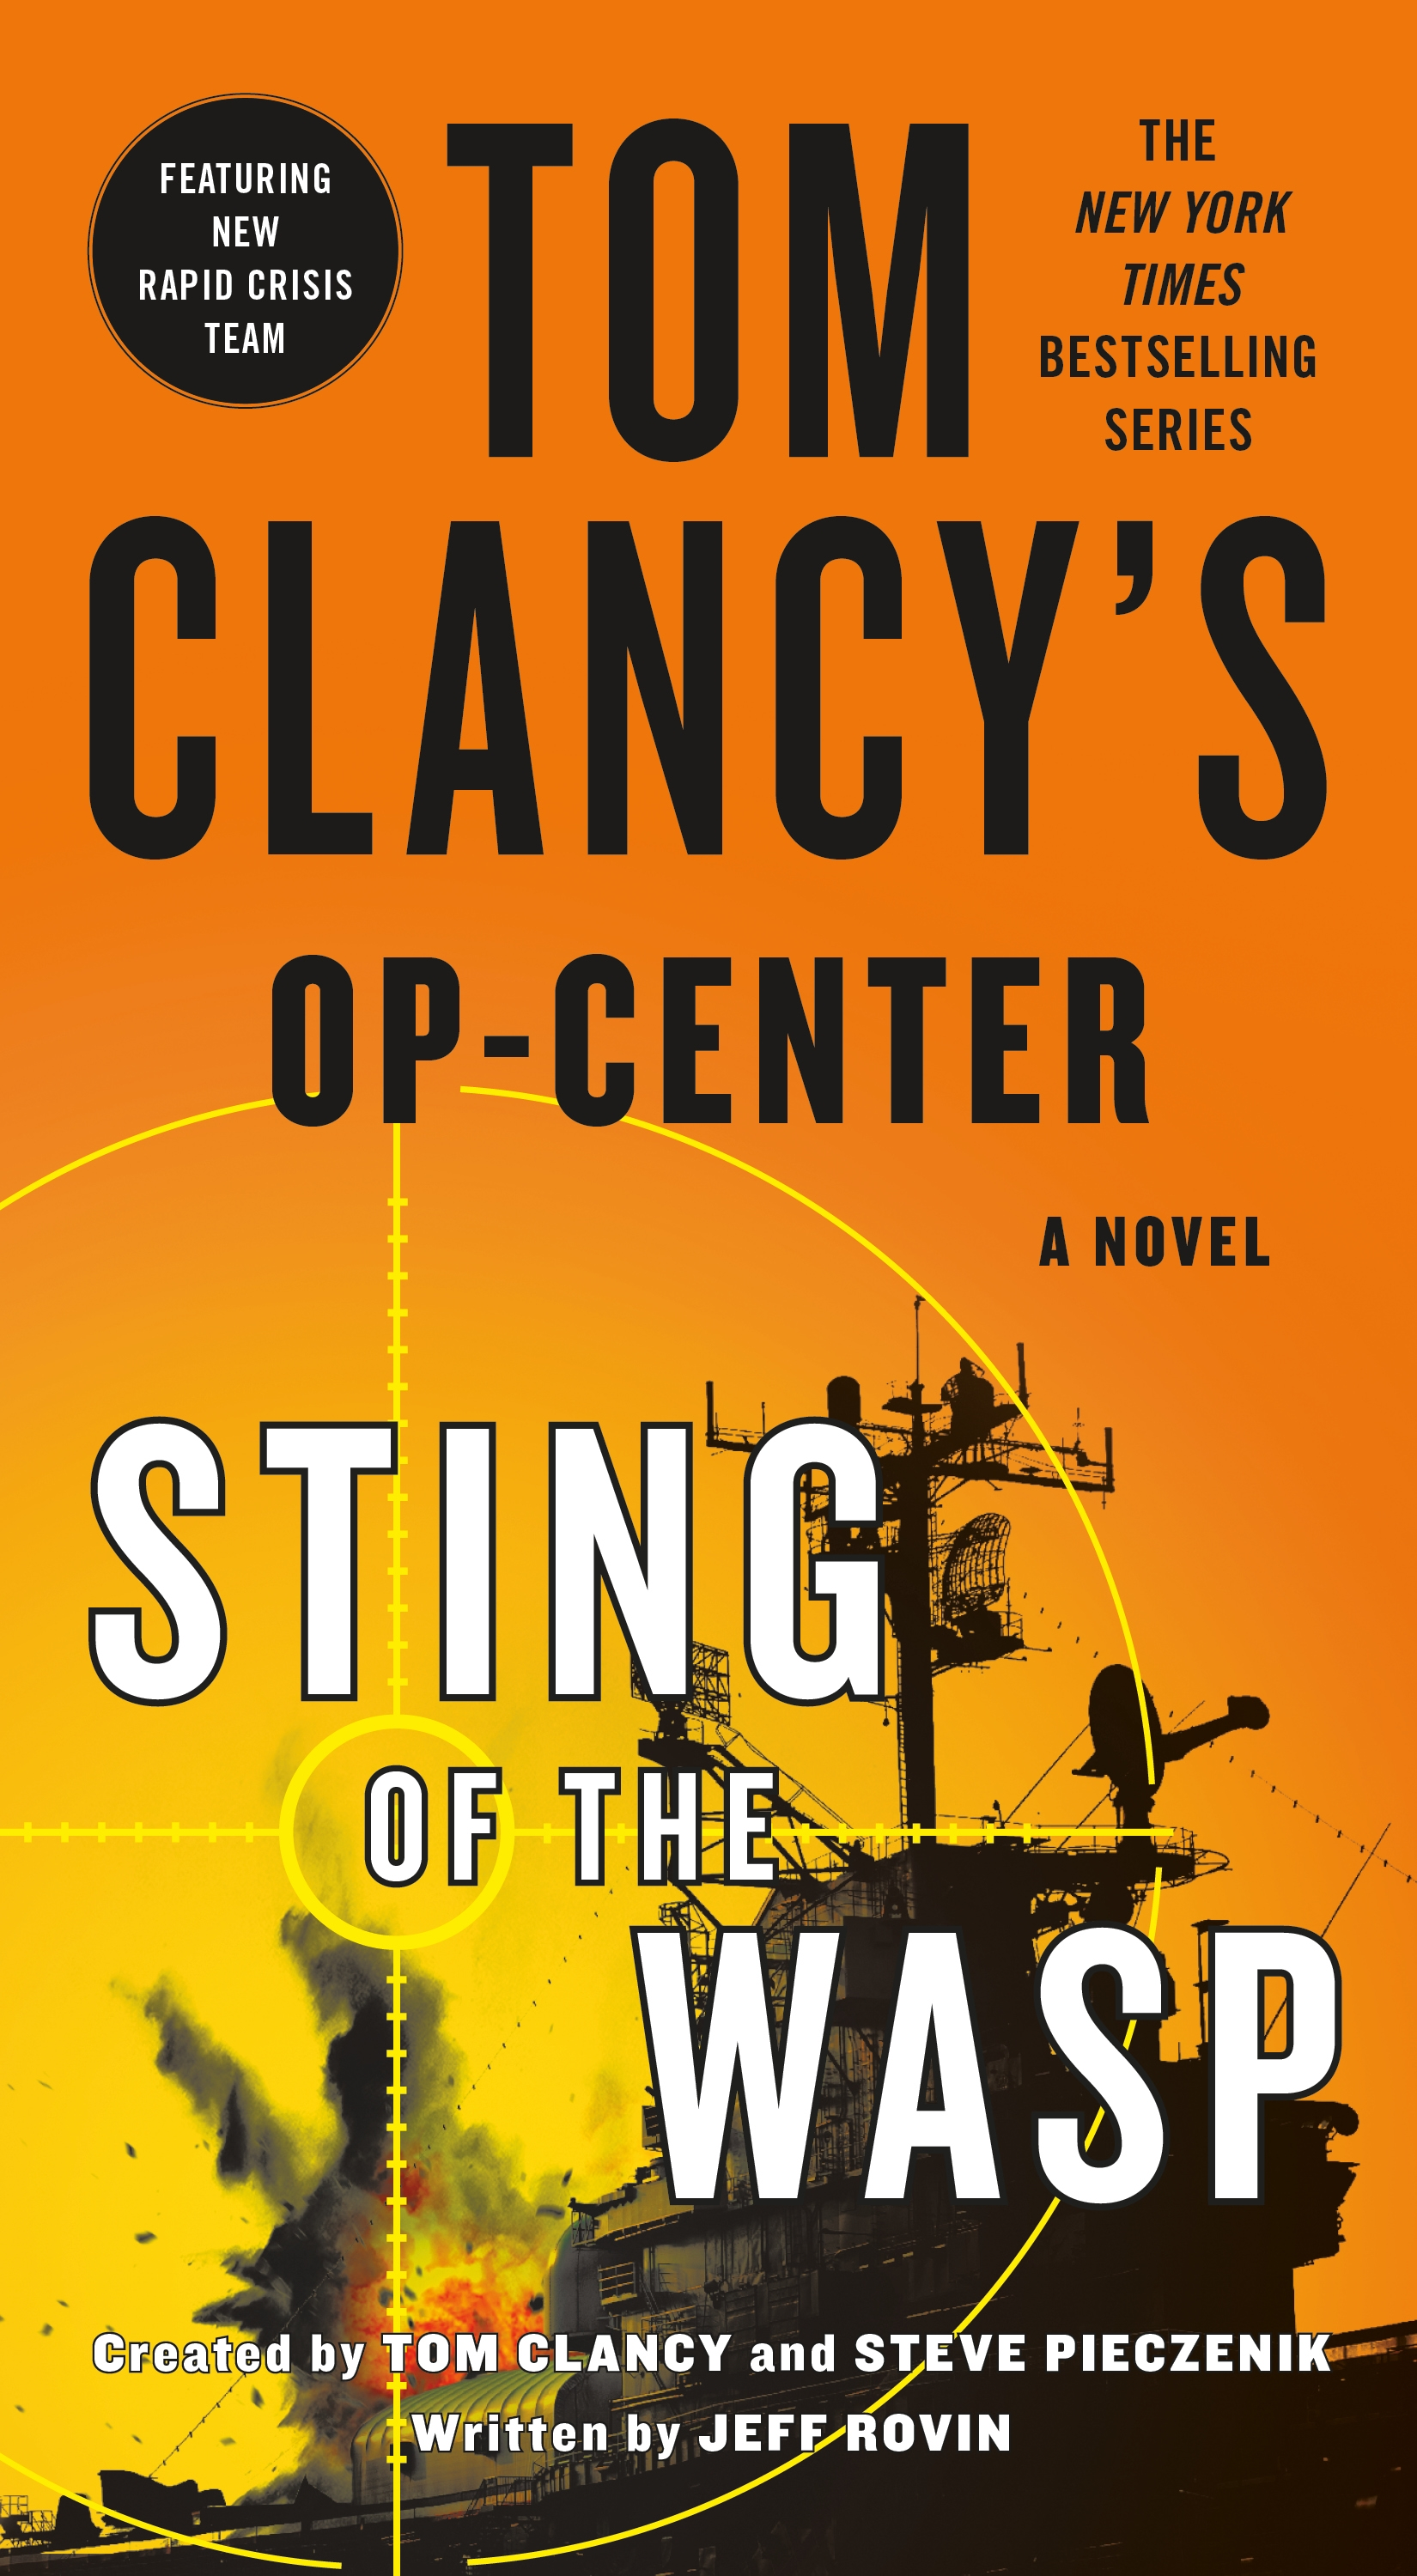 Tom Clancy's Op-Center Sting of the wasp cover image